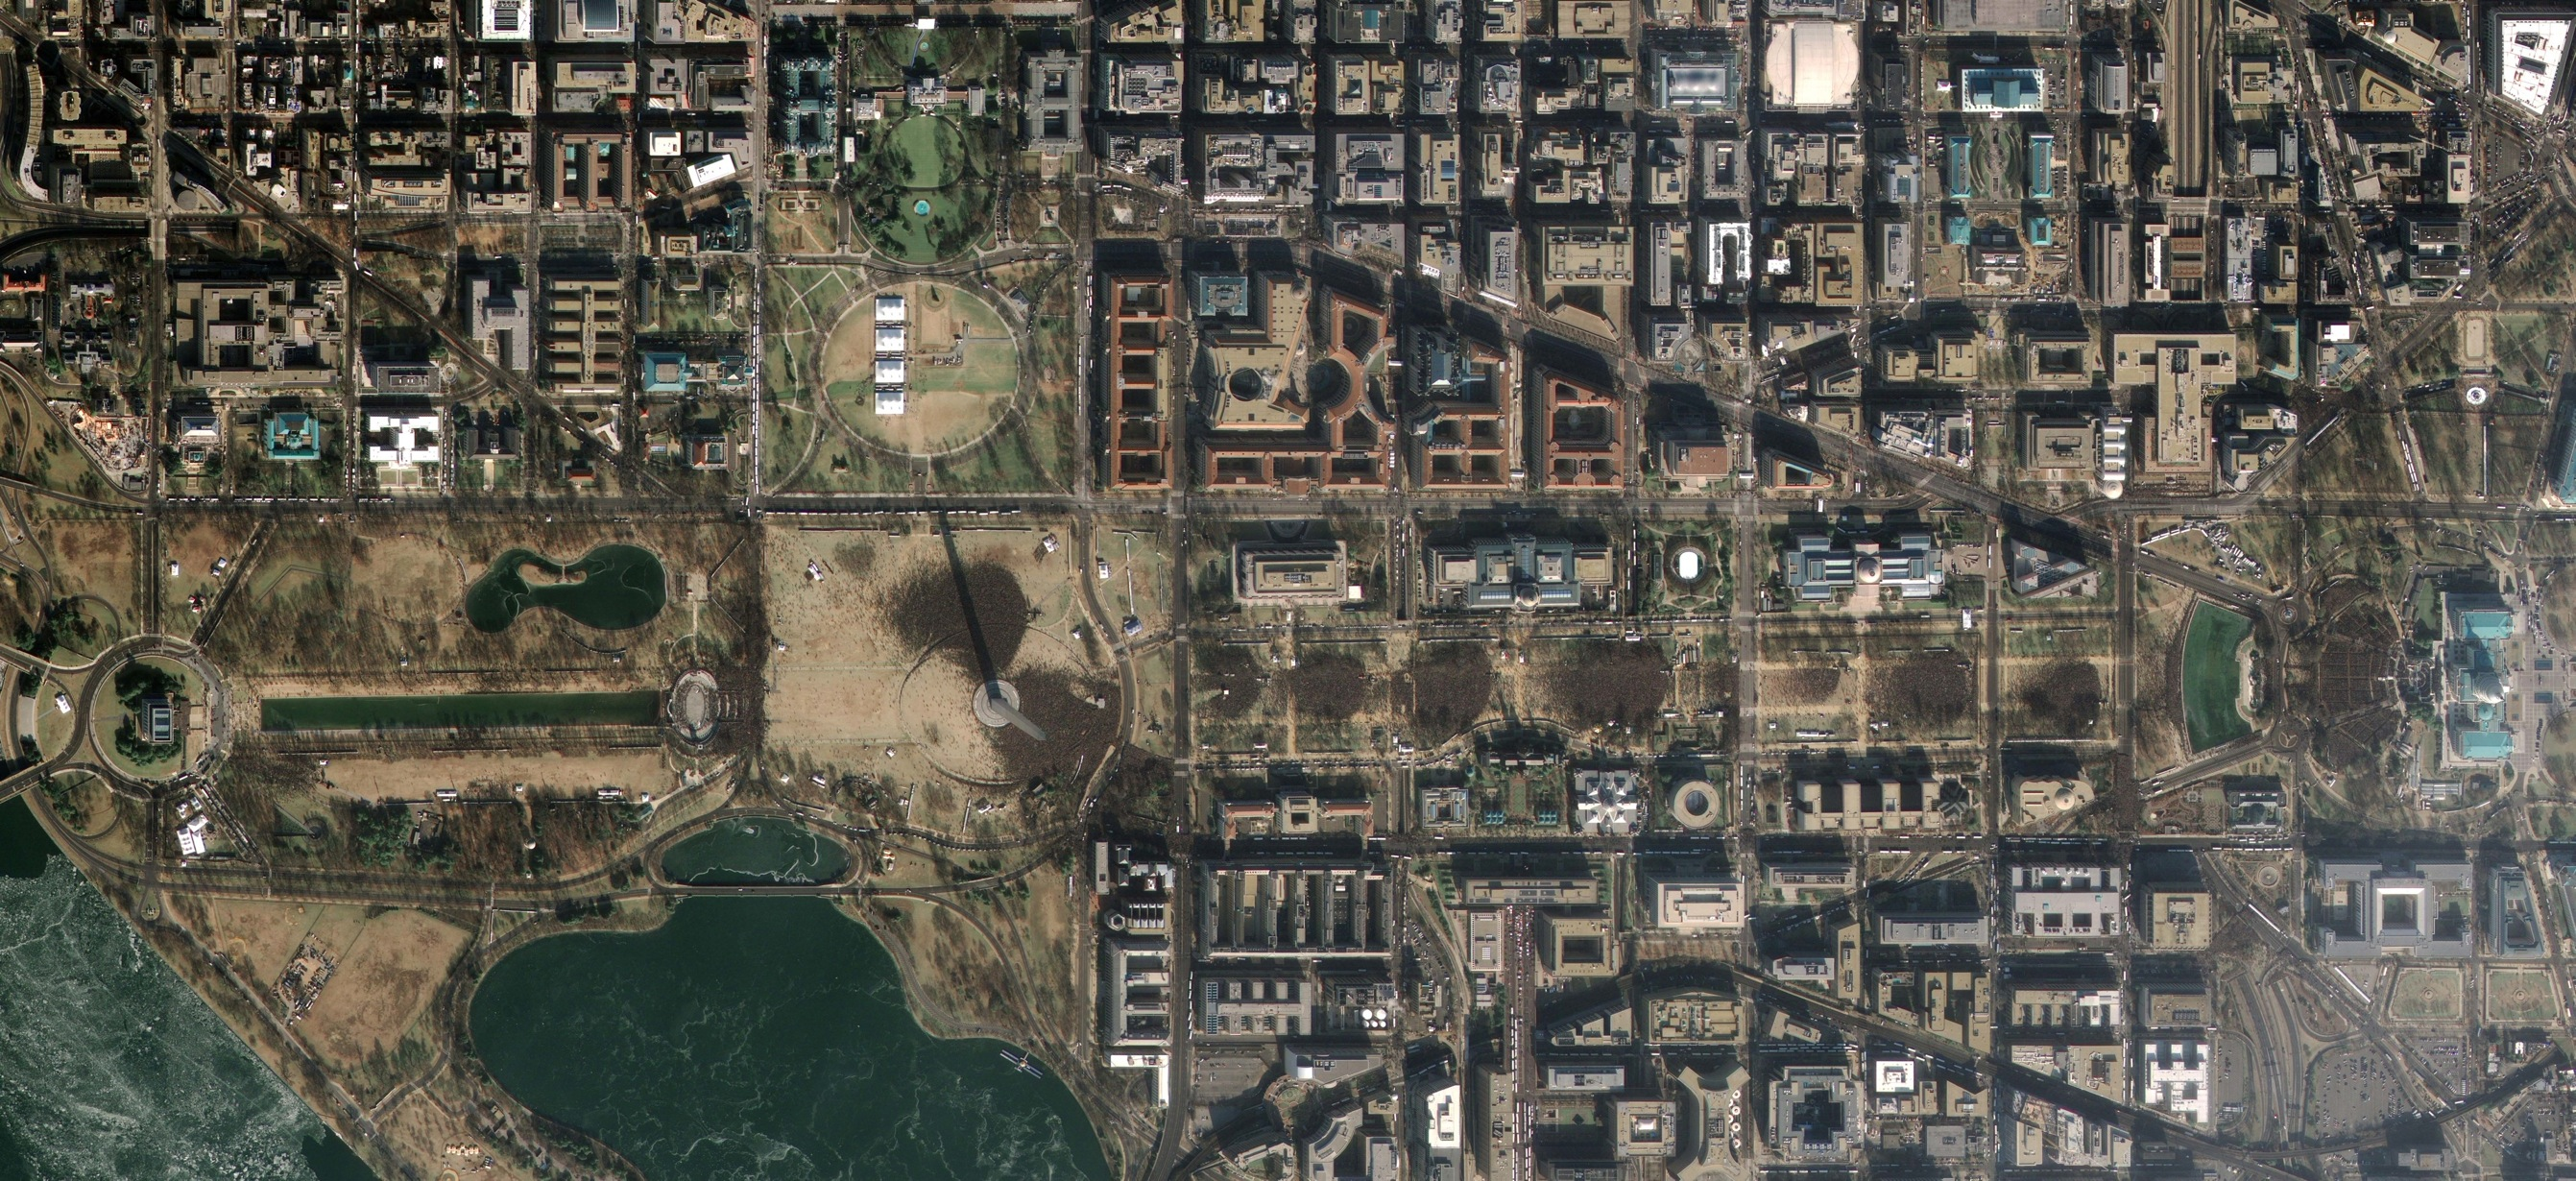 President Obama's inauguration, as seen from space 2